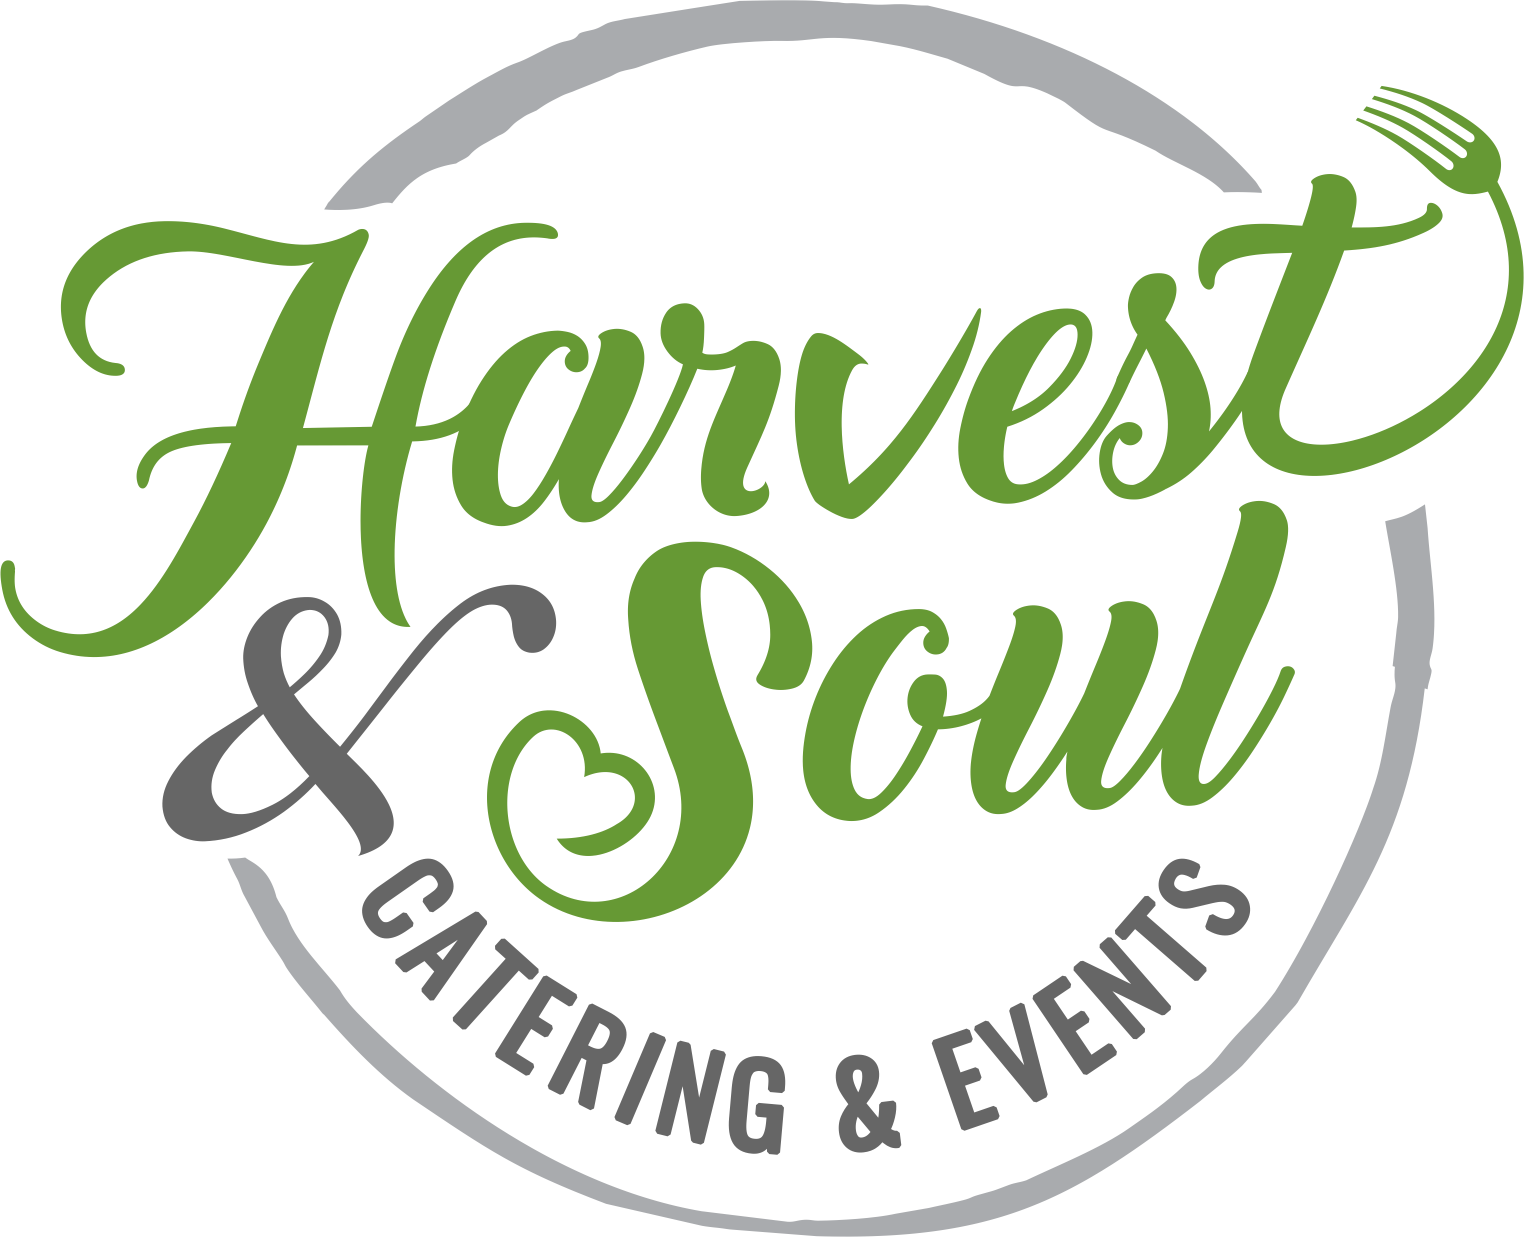 Harvest & Soul- Catering & Events